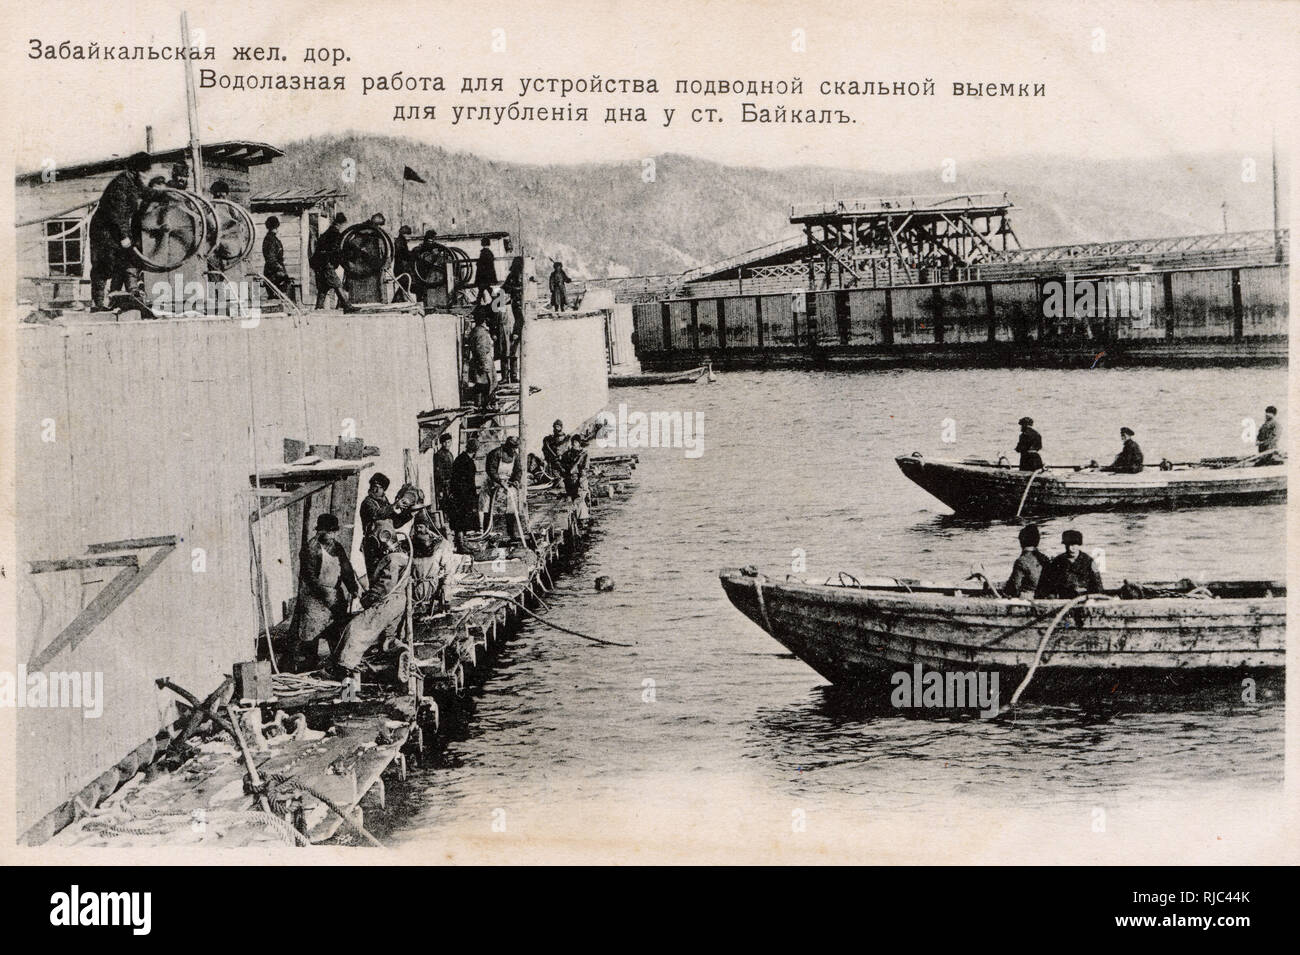 The Trans-Baikal Railway - a subsidiary of the Russian Railways headquartered in Chita and serving Zabaykalsky Krai and Amur Oblast. The mainline was built between 1895 and 1905 as part of the Trans-Siberian Railway. Here, divers are being used to survey the riverbed prior to the construction of a railway bridge. Hazards faced for the tens of thousands of workers employed in the construction of the railway included the complex terrain, crossed by ridges, rivers and swamps, permafrost, low winter temperatures, and natural disasters. Stock Photo